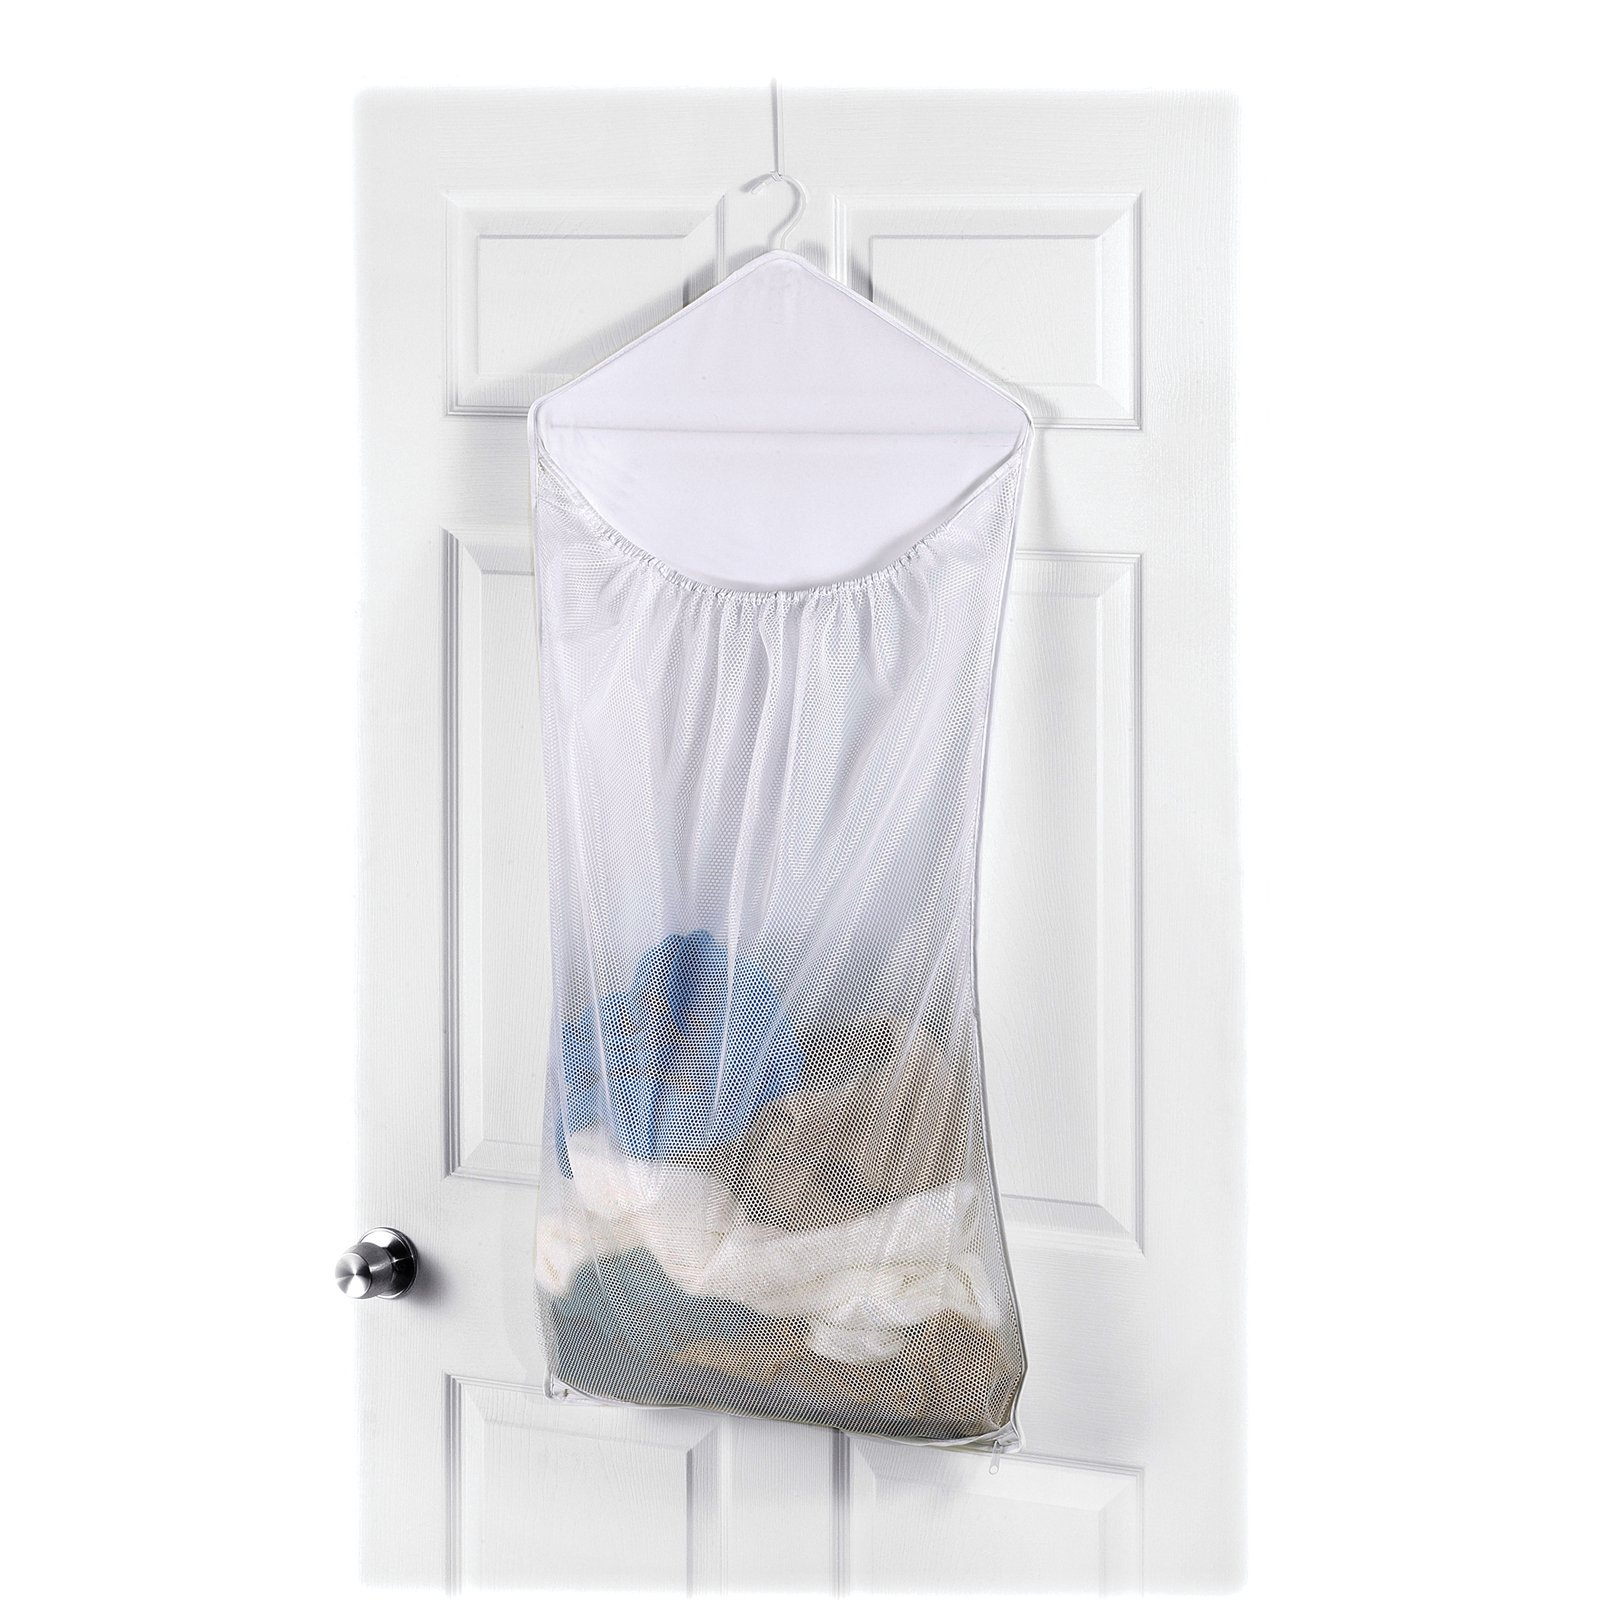 Charmant Whitmor Dura Clean Over The Door Hanging Laundry Hamper White   Walmart.com